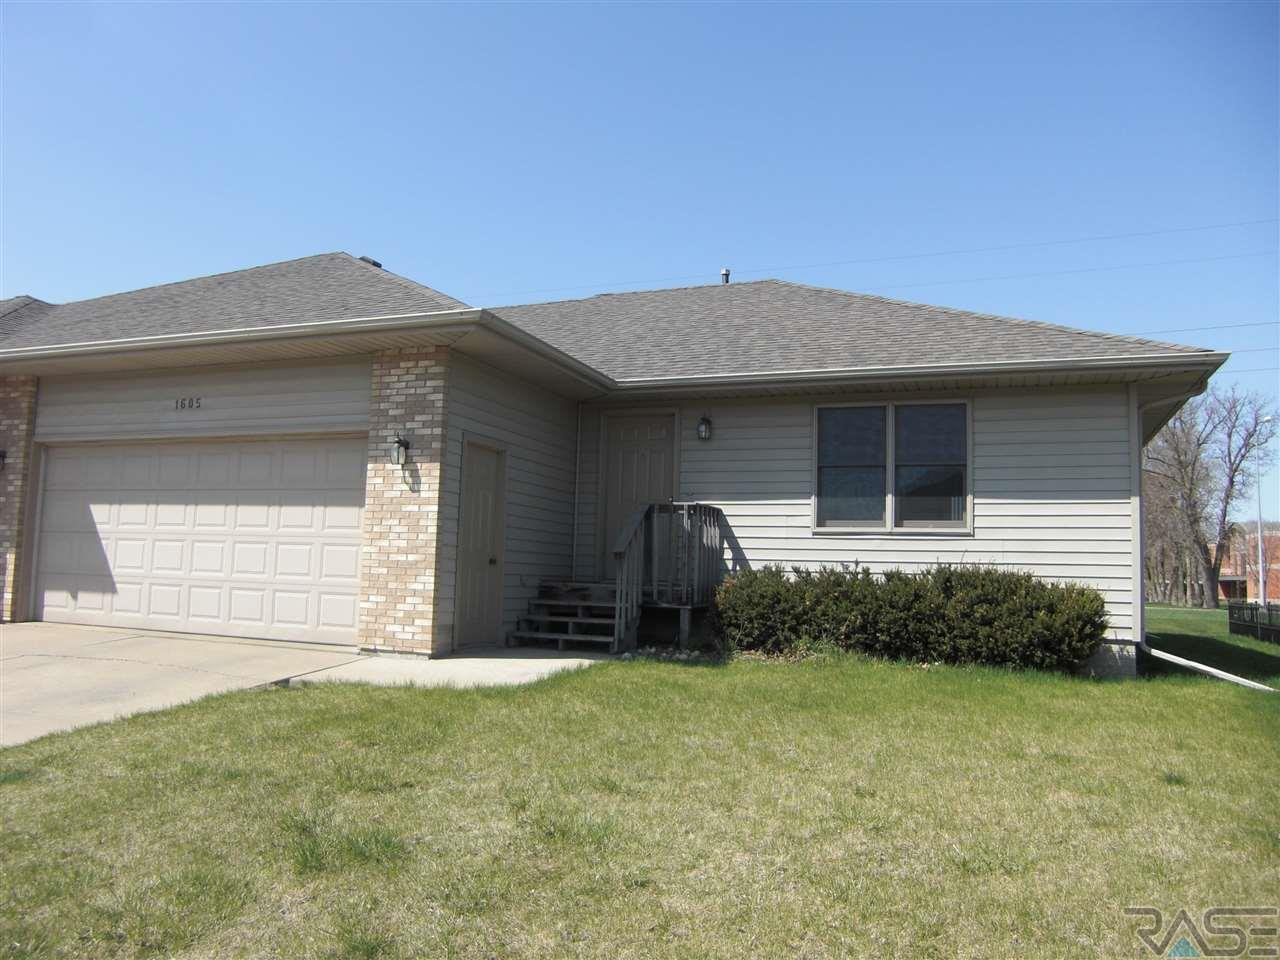 1605 S Campbell Trl, SIOUX FALLS